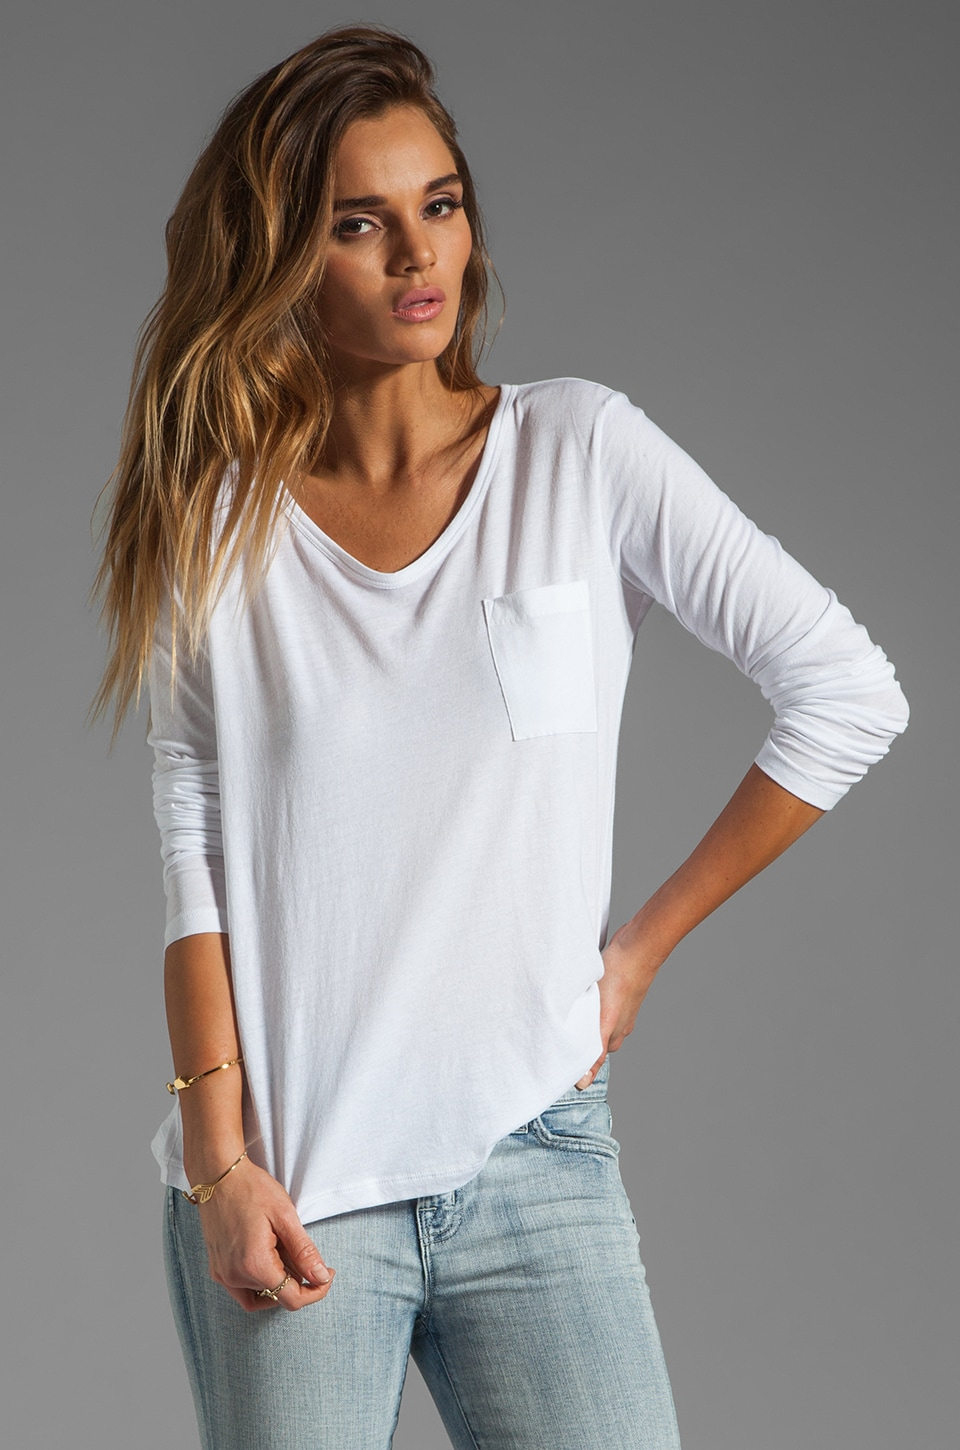 Theory Electrify Nattona Long Sleeve Pocket Tee in White